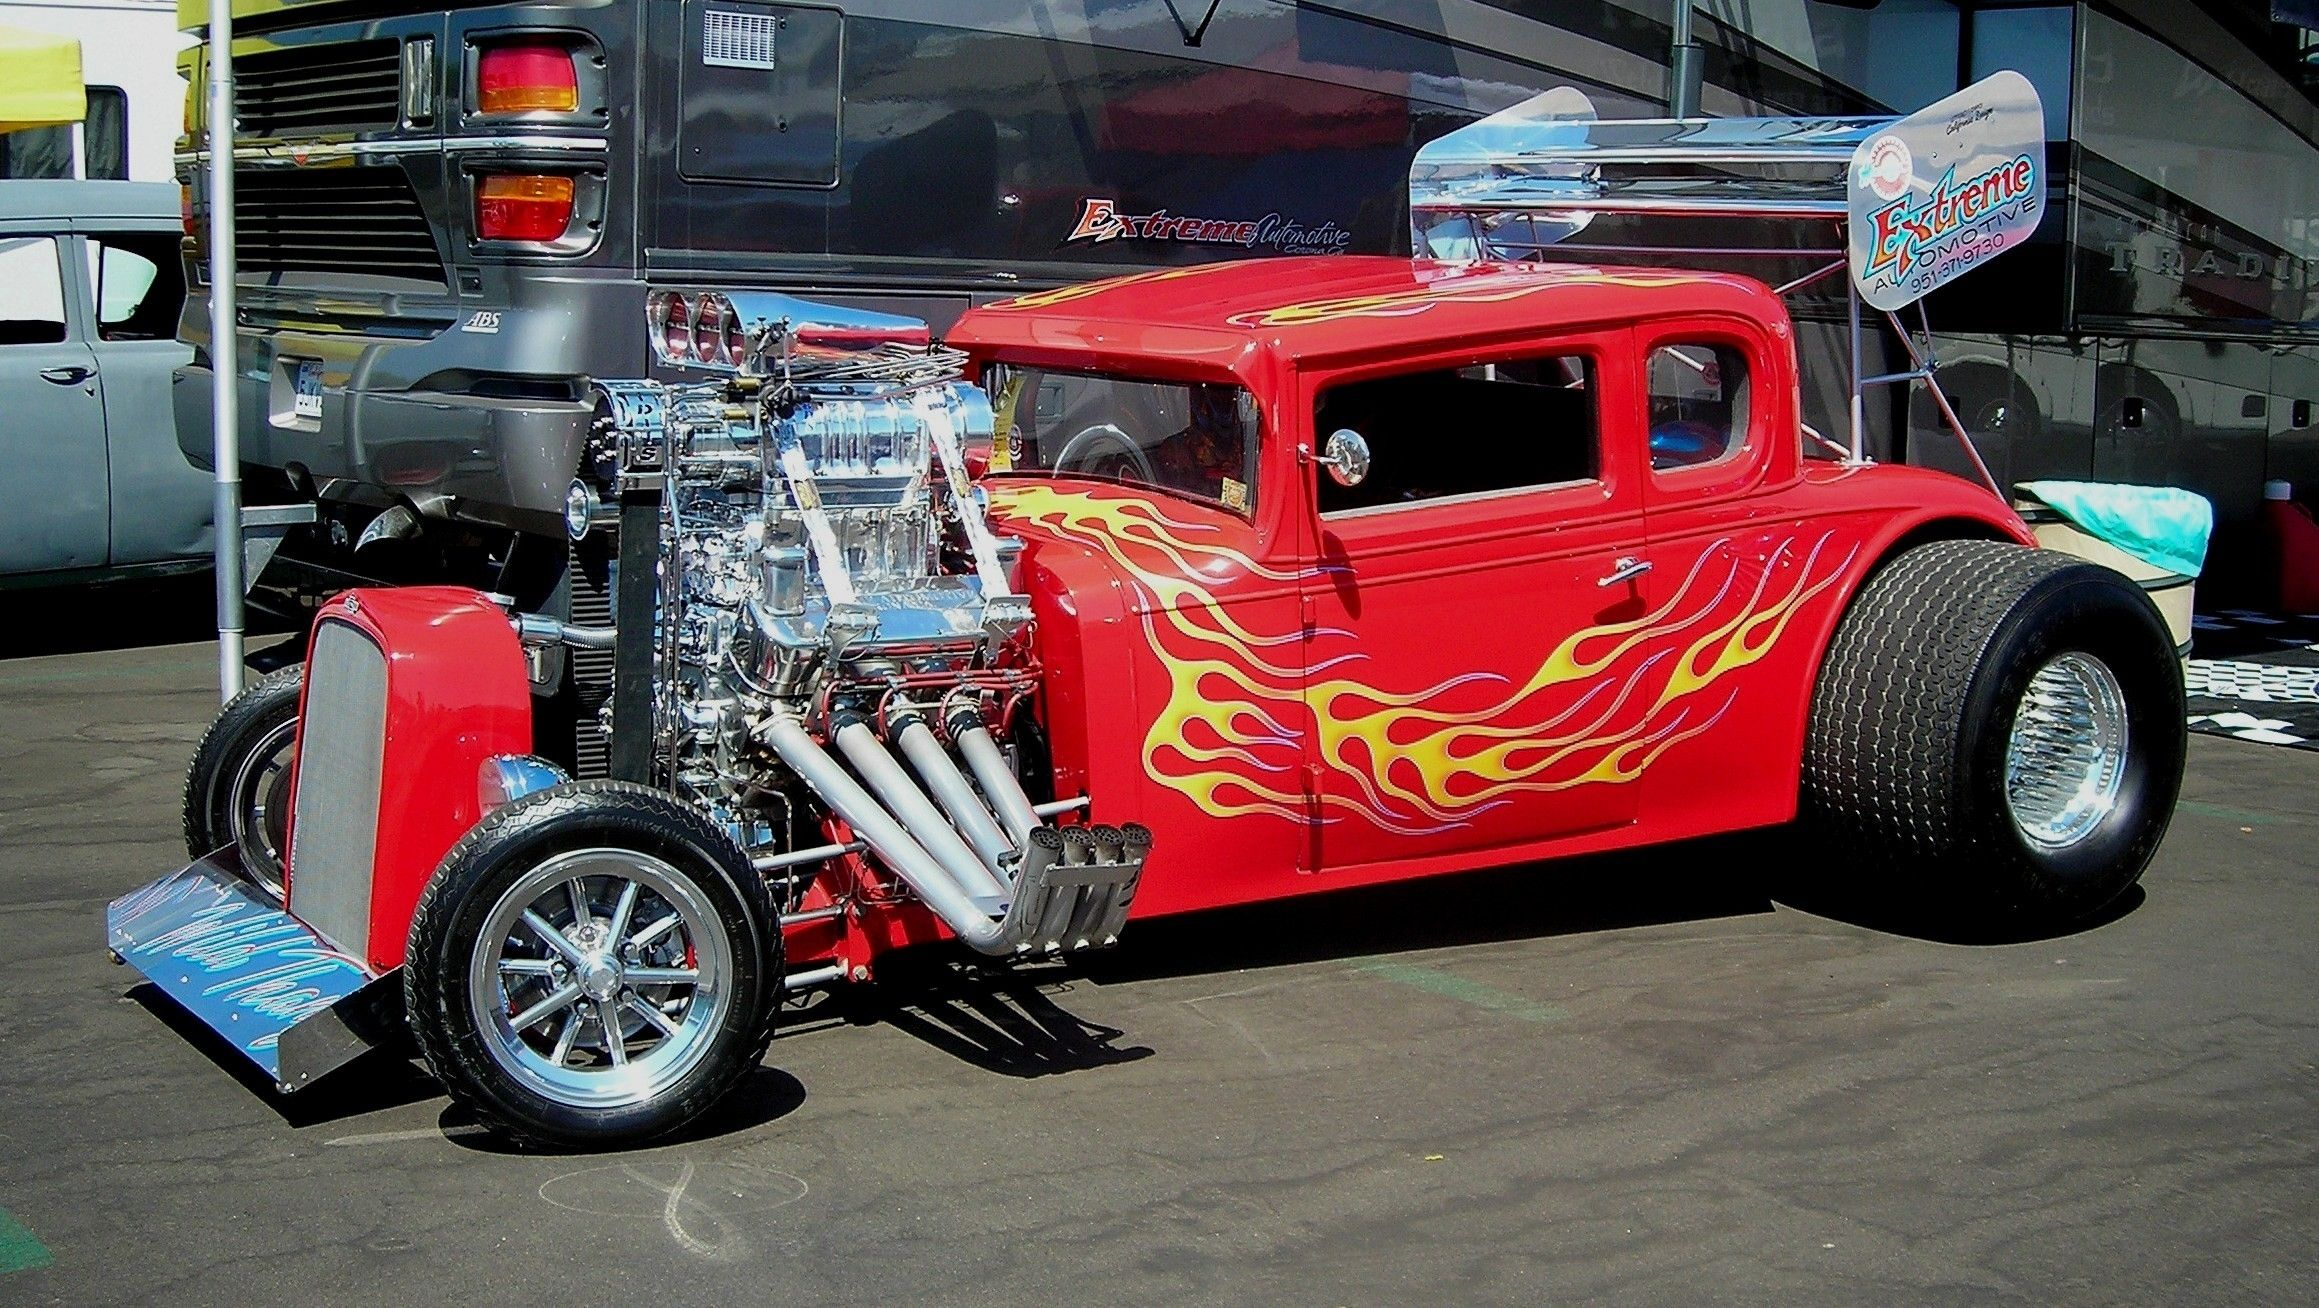 Extreme Blown Hot Rod Cars Pinterest Hot rods, Cars